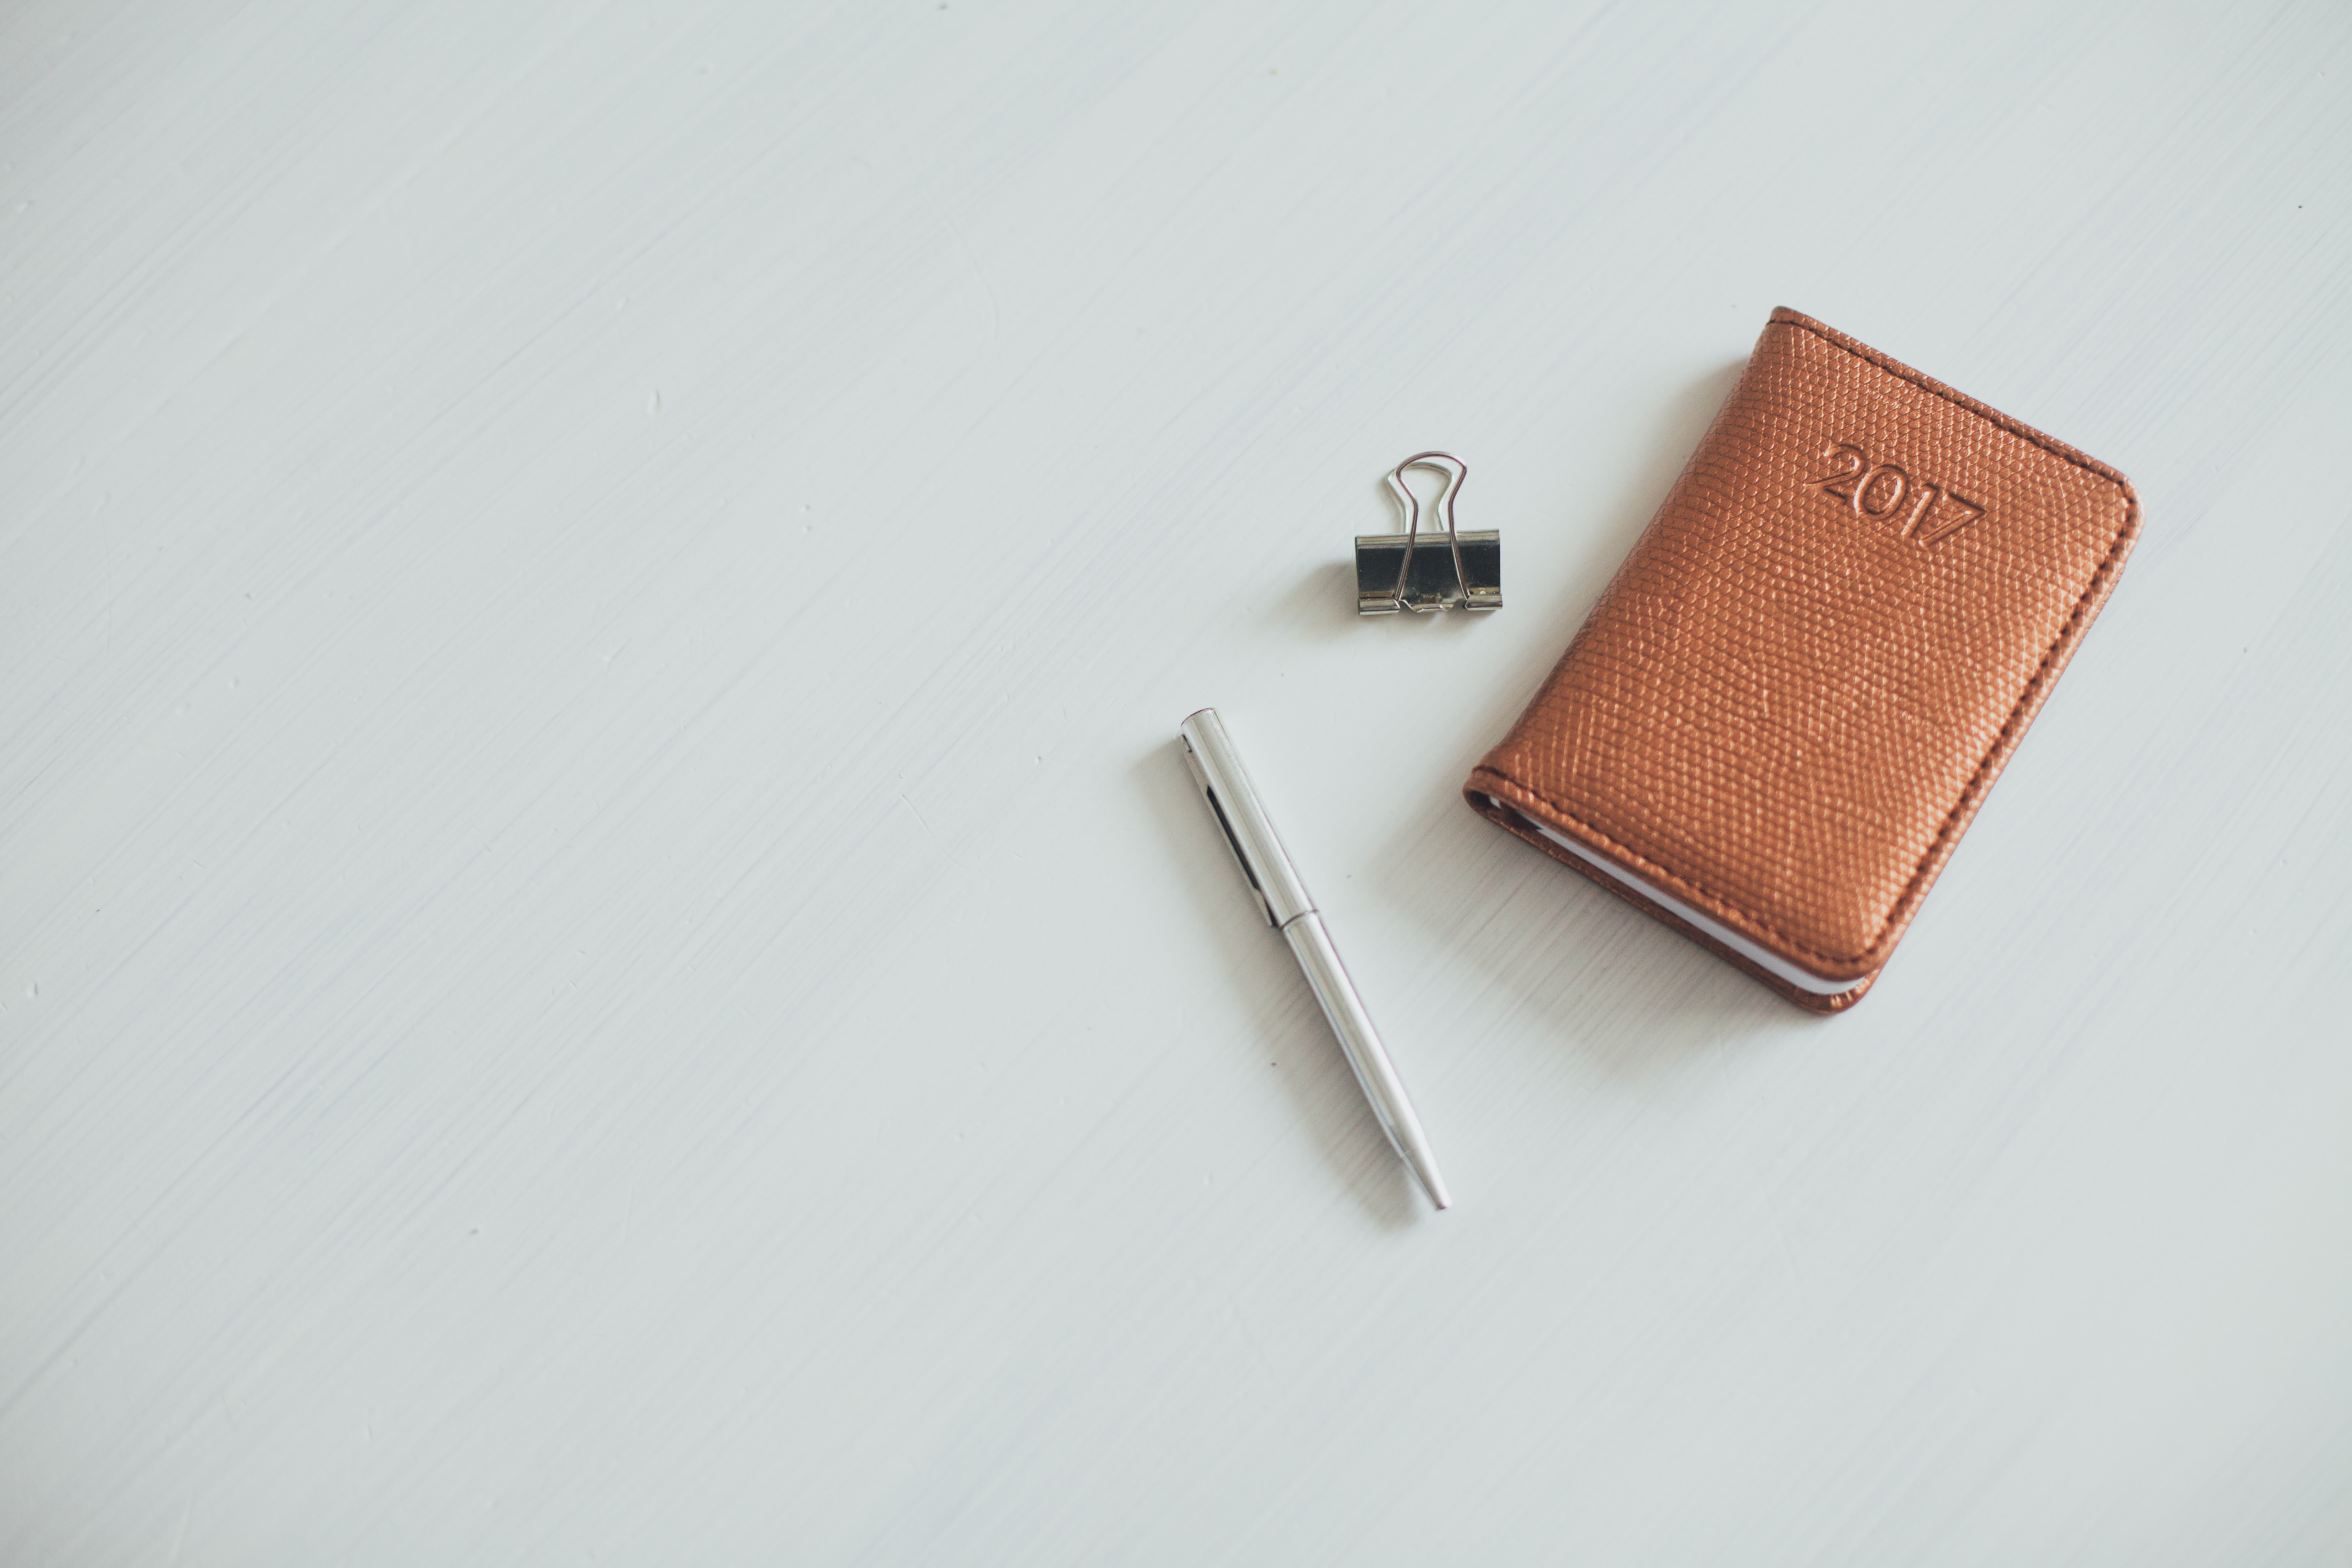 A small notebook with a leather cover next to a pen and a bulldog clip